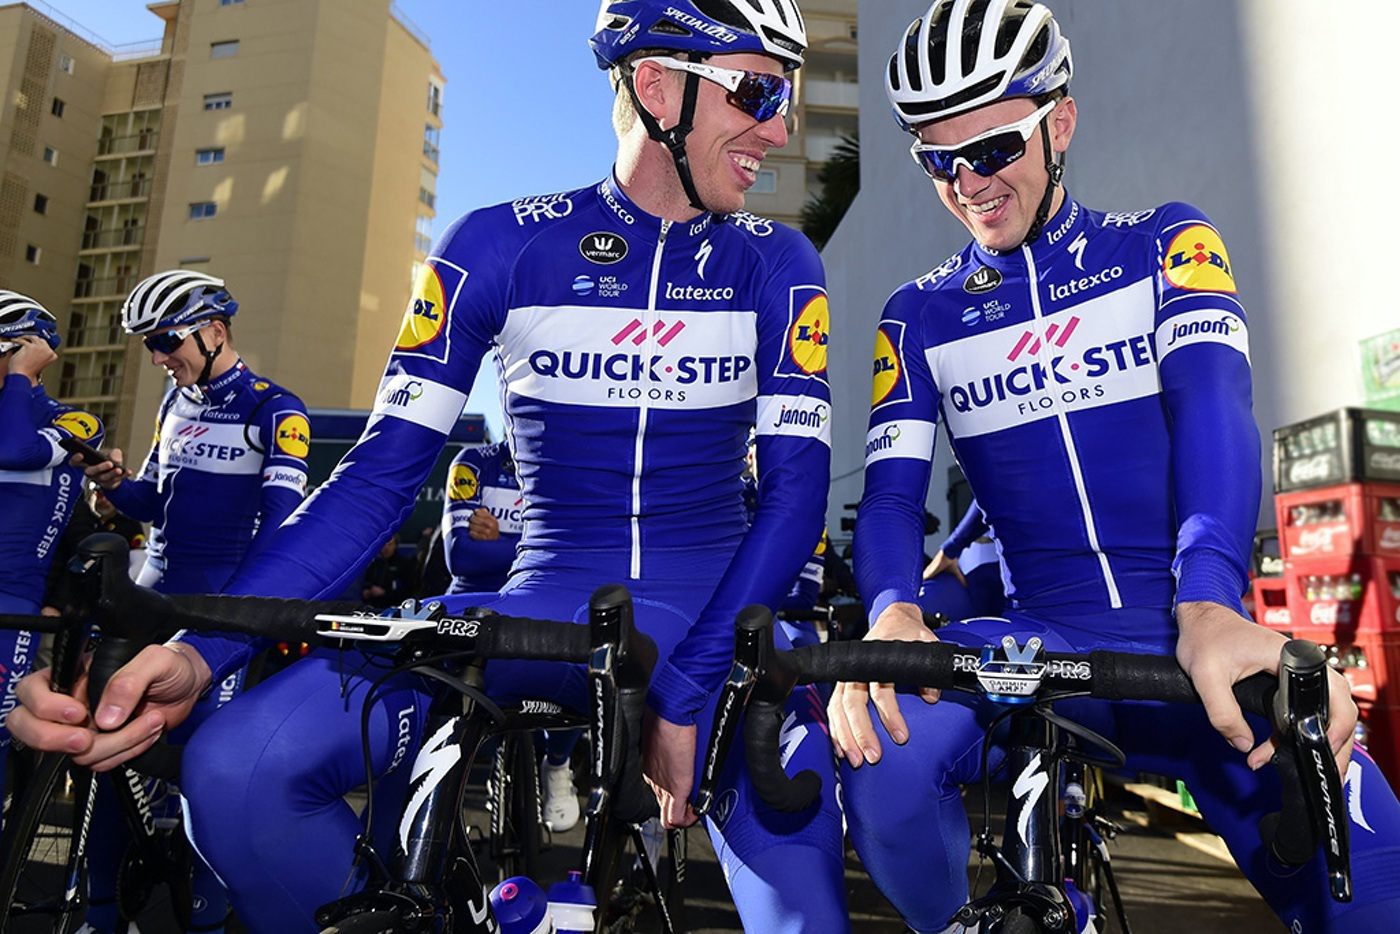 El Quick-Step Floors elige componentes PRO